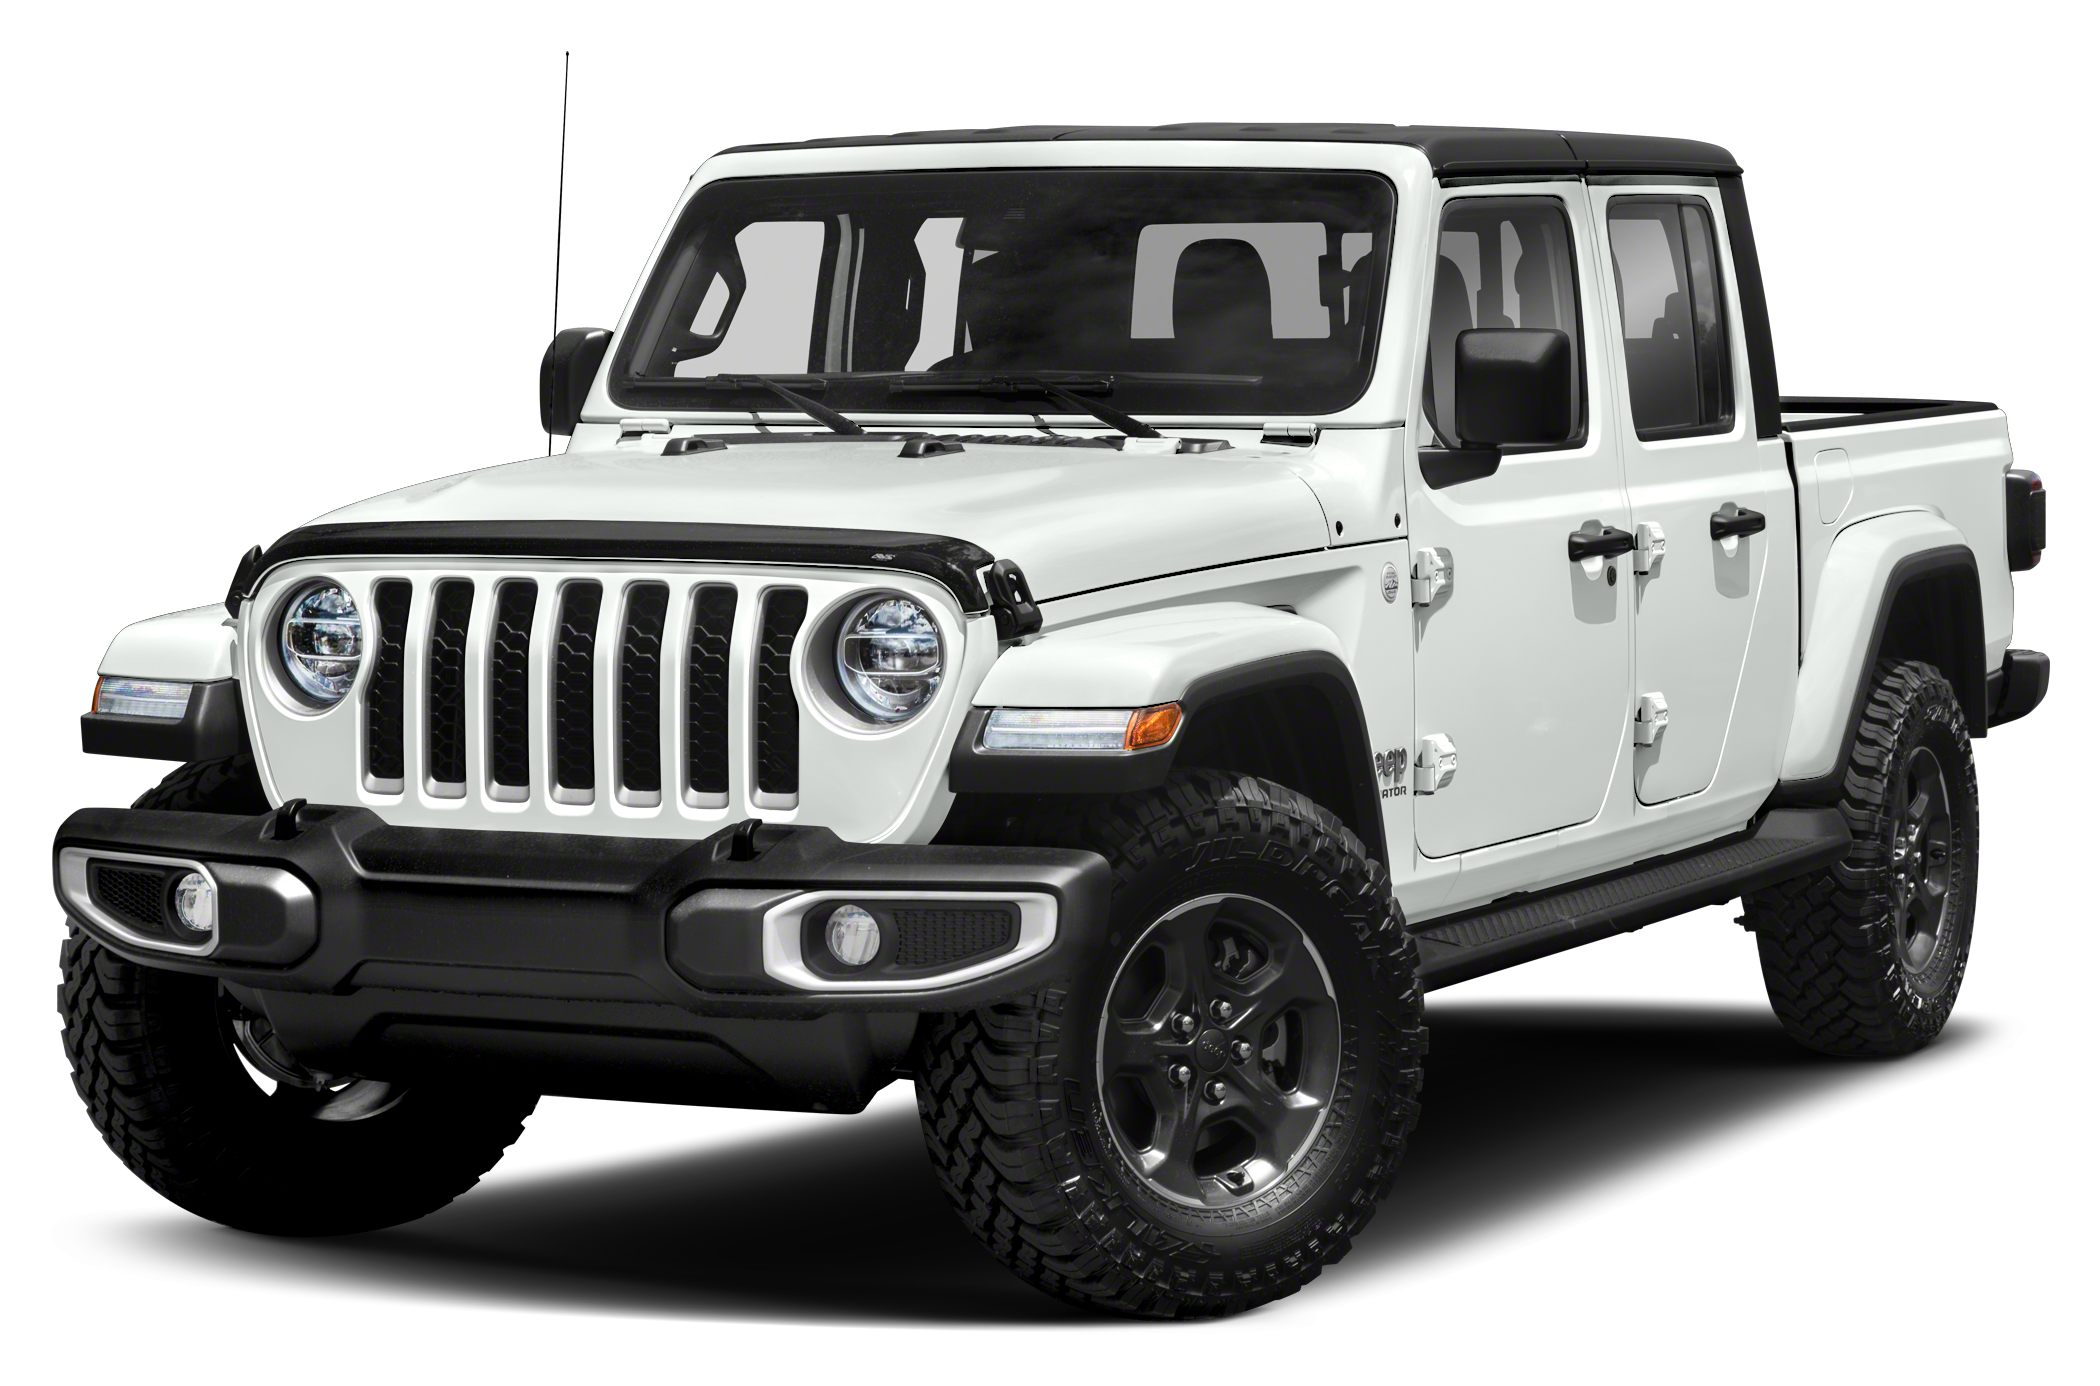 2020 Jeep Gladiator Rebates And Incentives